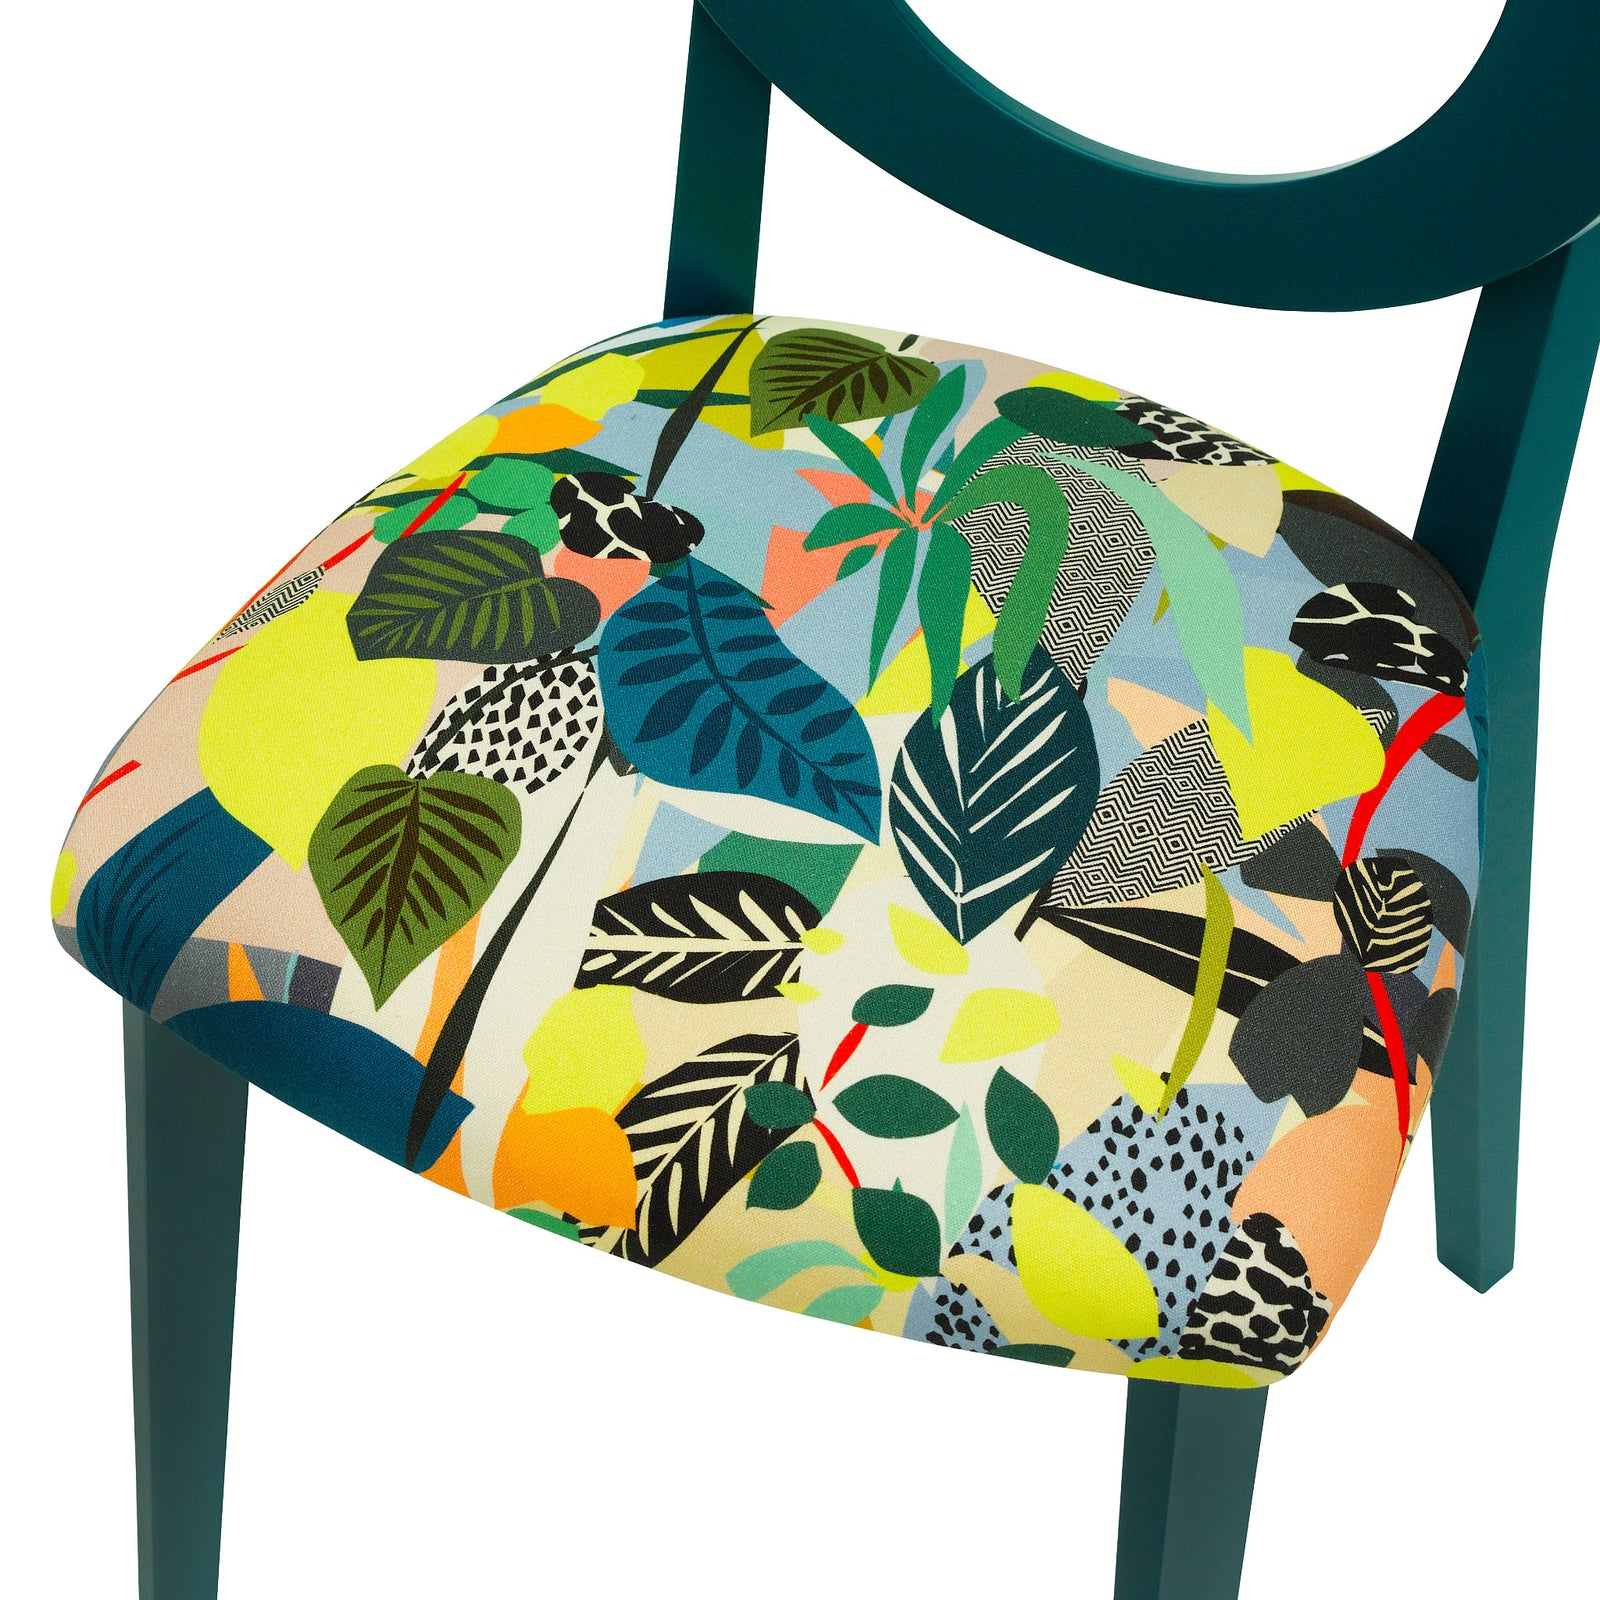 The Chloe Contemporary Chair in the beautiful Hockney Print from Kitty McCall